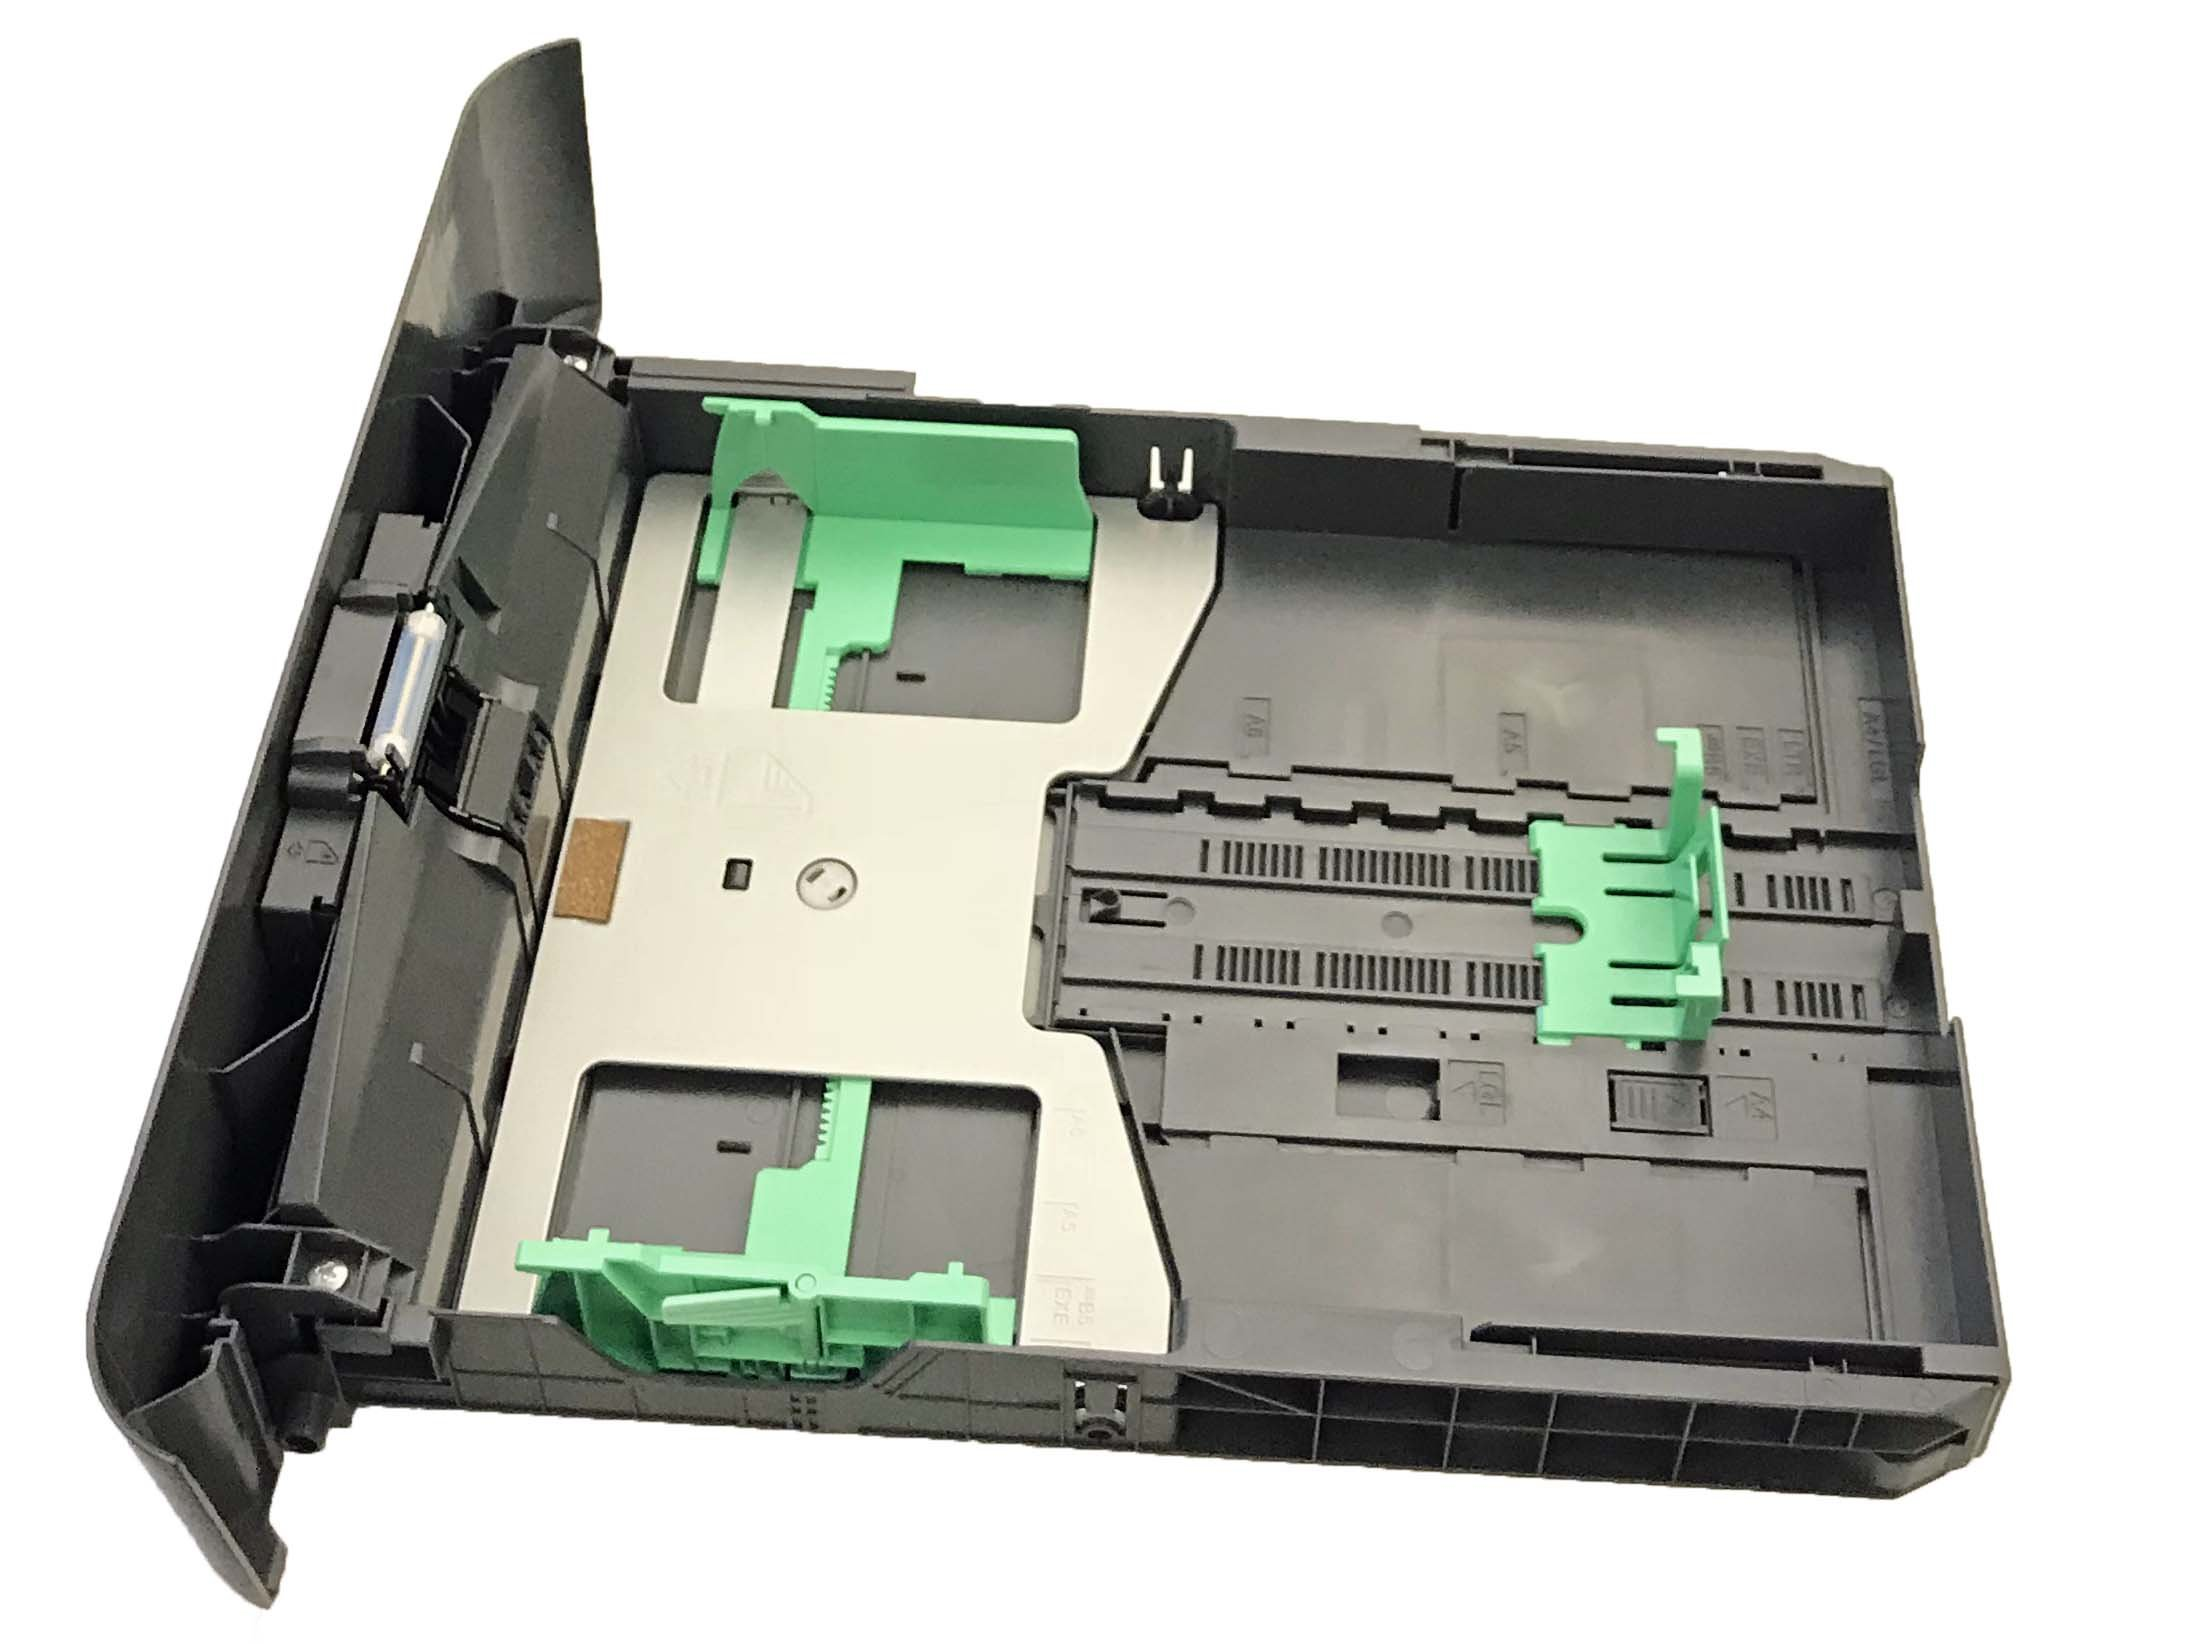 OEM Brother 250 Page Paper Cassette Tray for DCP-L2520DW, DCPL2520DW, DCP-L2540DW, DCPL2540DW by Brother (Image #1)